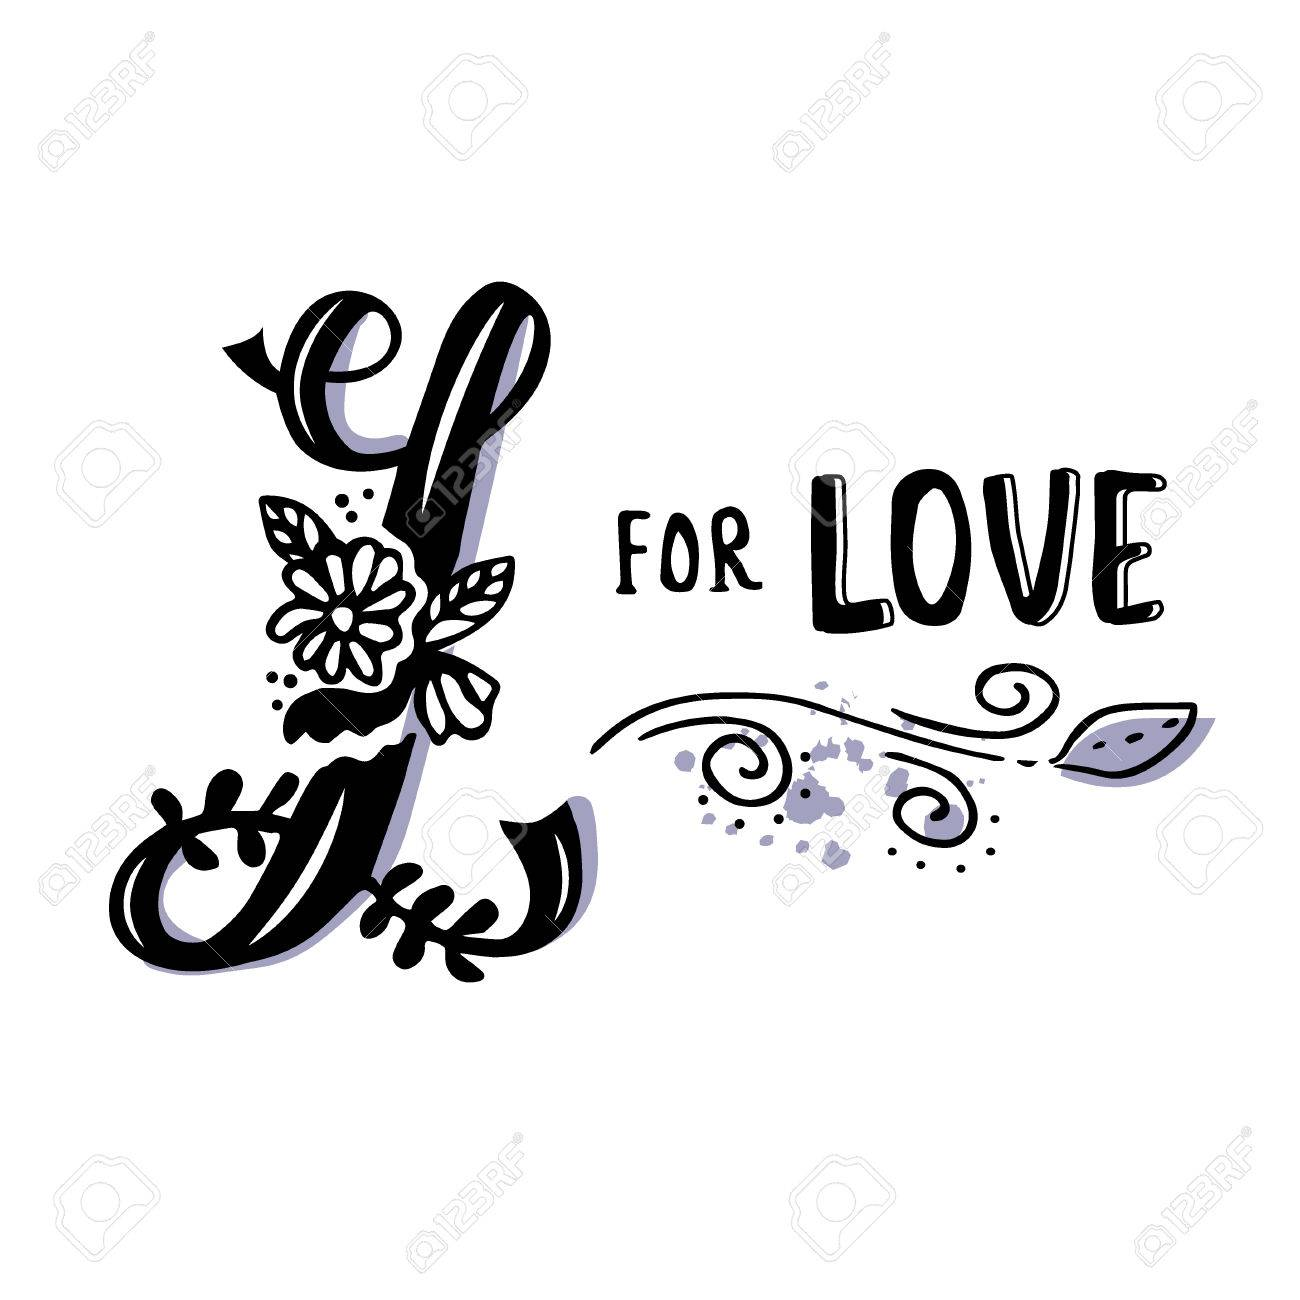 L For Love Hand Drawn Flourished Capital Letter And Decoration Elements Isolated On White